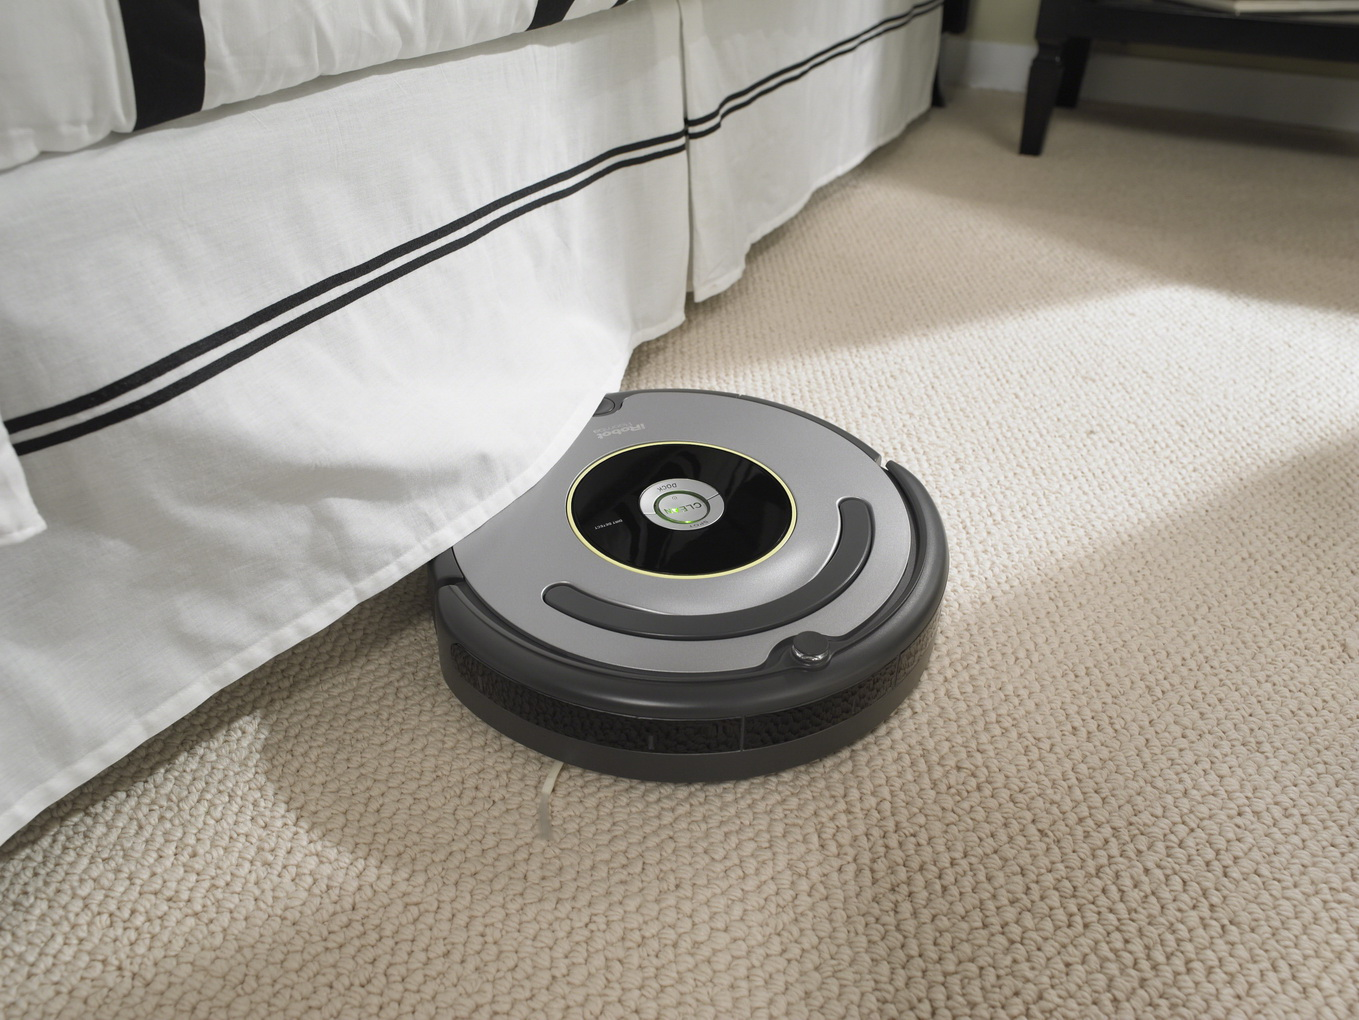 gagnez un aspirateur robot i robot roomba 631. Black Bedroom Furniture Sets. Home Design Ideas